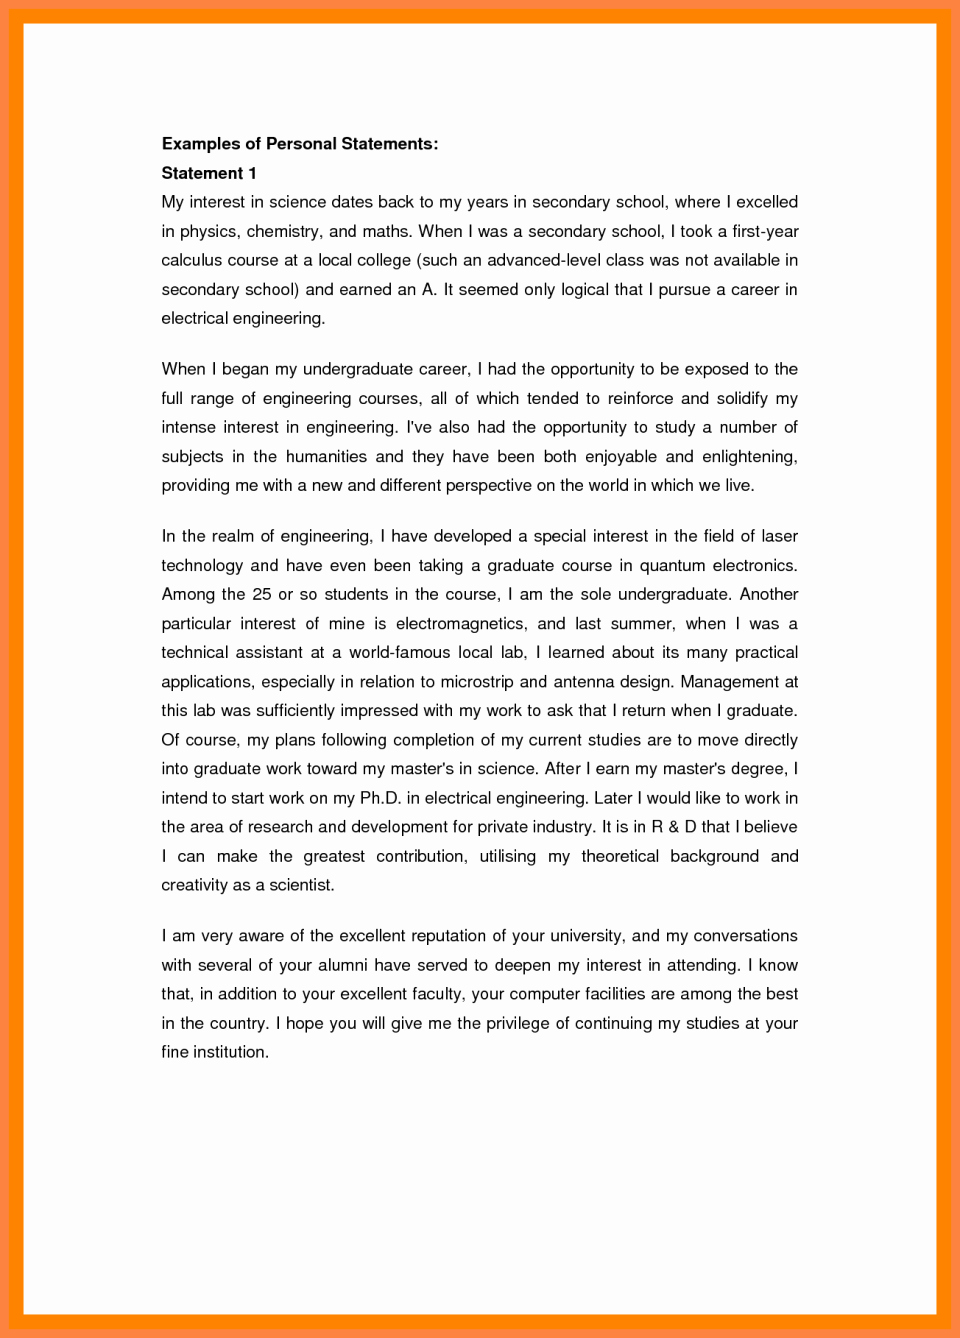 Personal Statement Of Faith Template Lovely Personal Statement Faith Examples Presbyterian Page 53